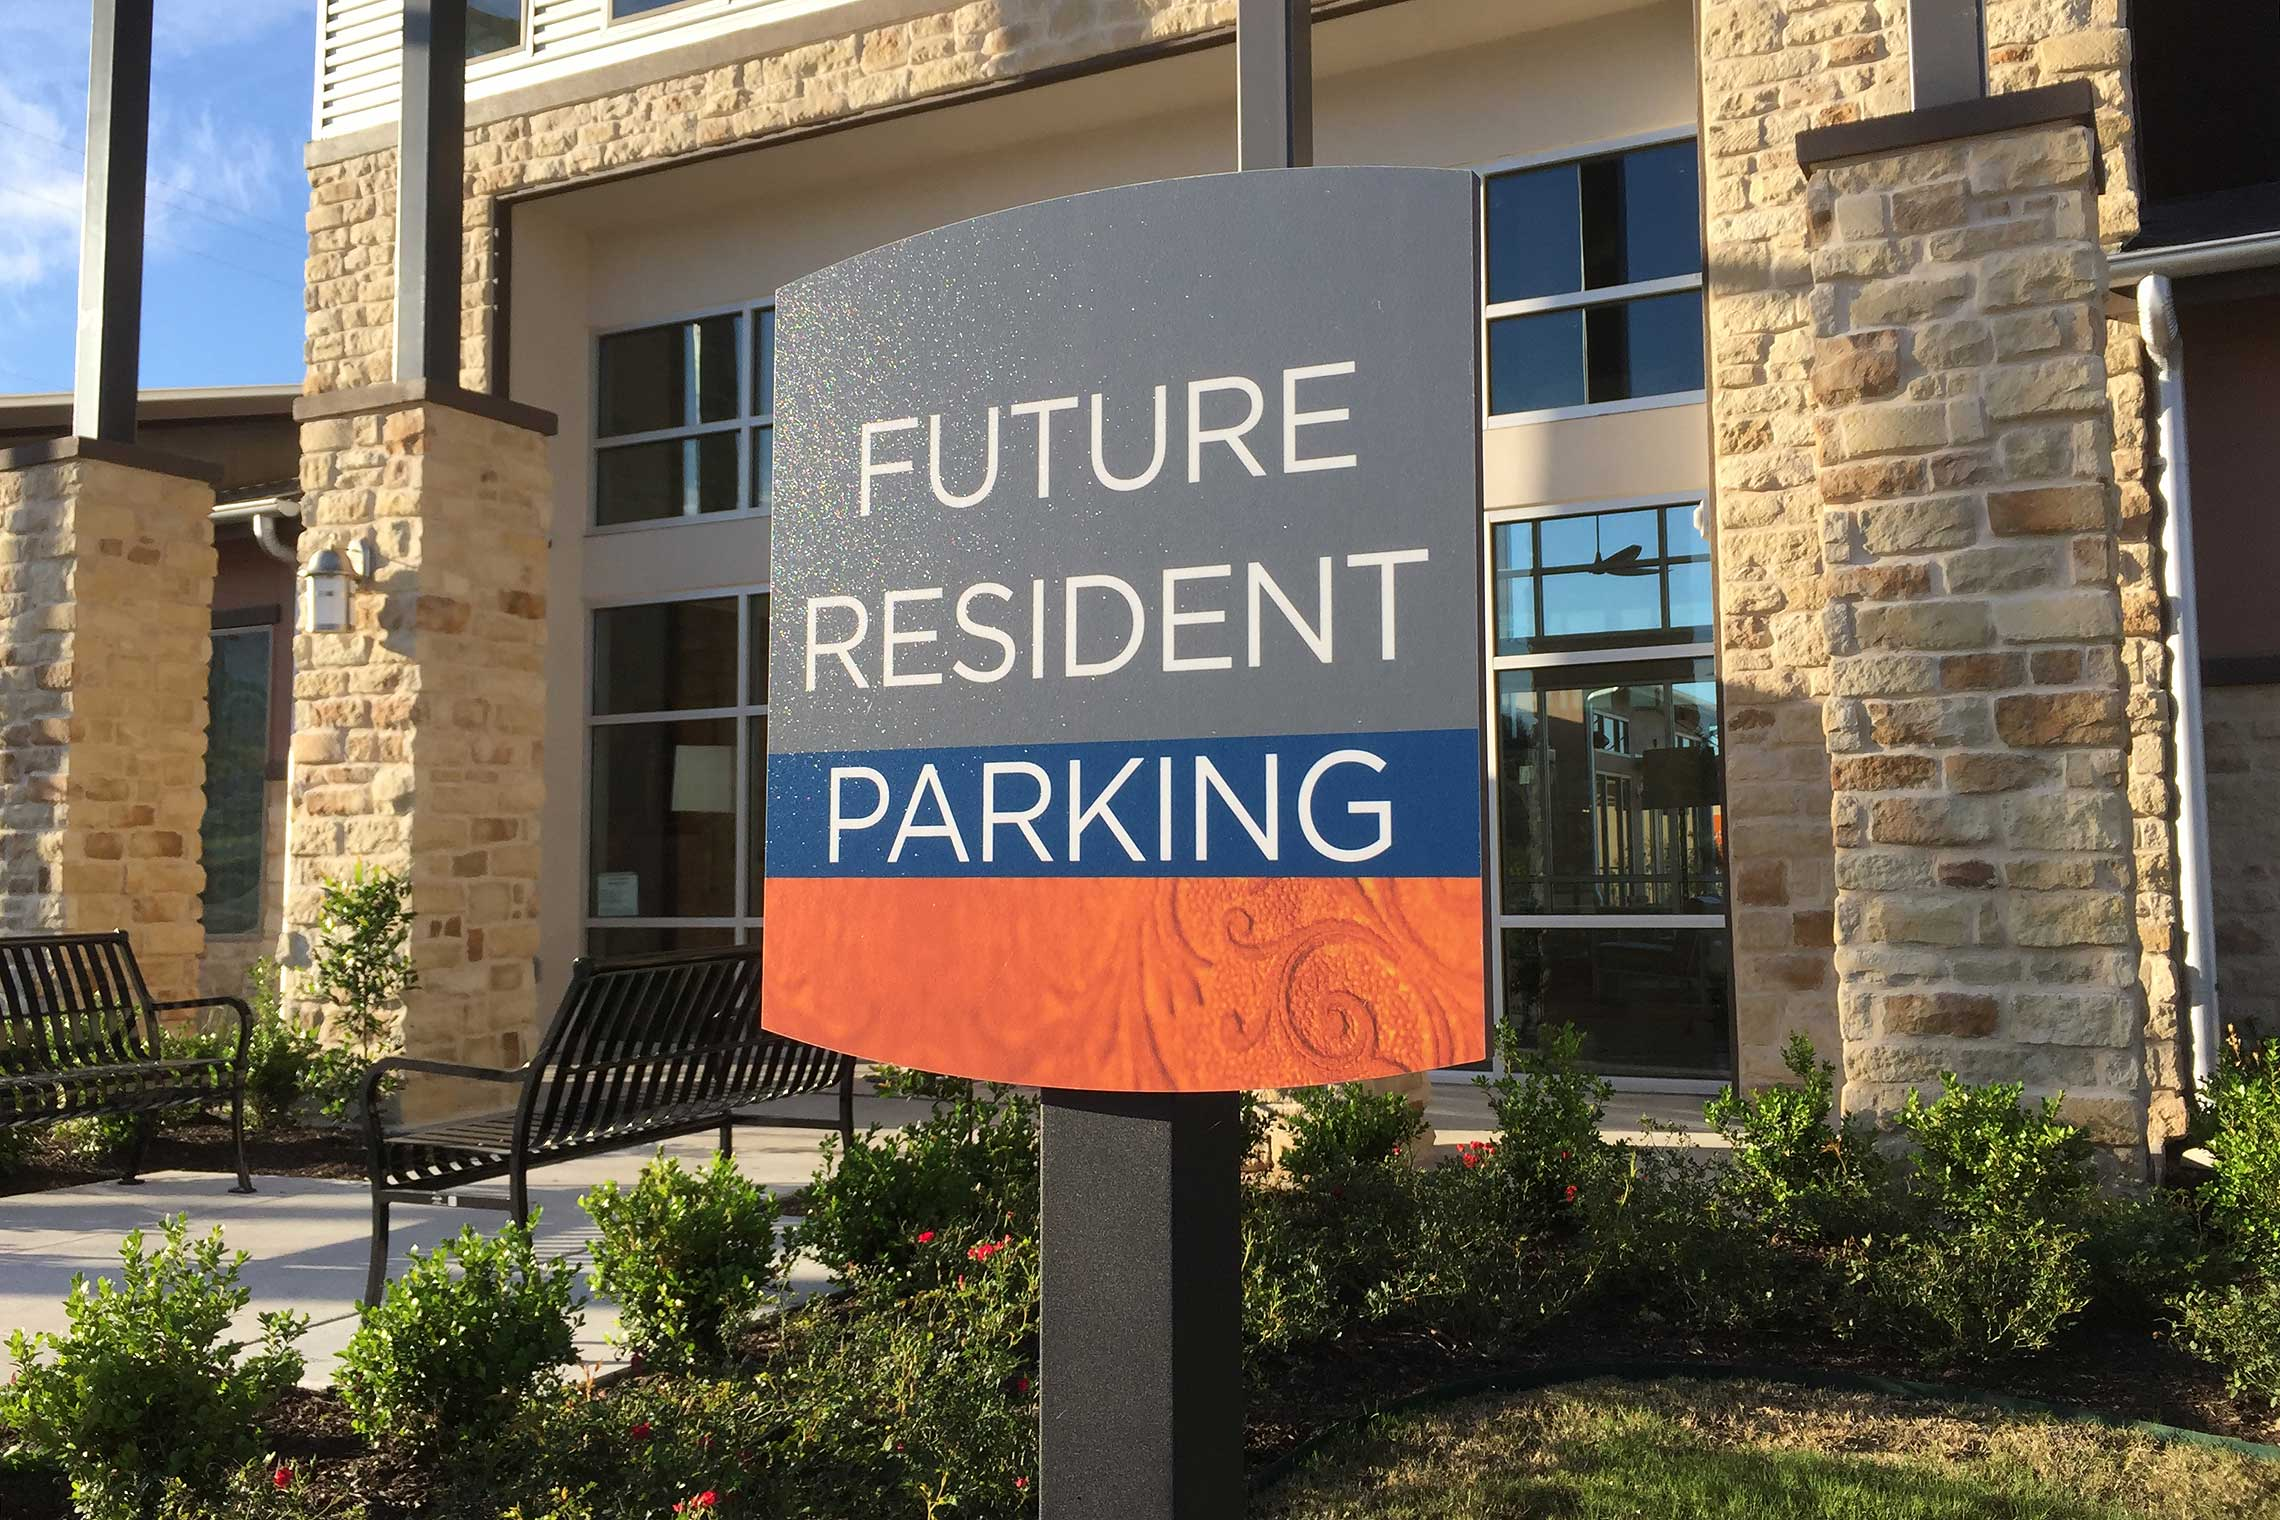 Design Sign Studio Reveal Fusion Series Signage - Future Resident Parking Sign on Post